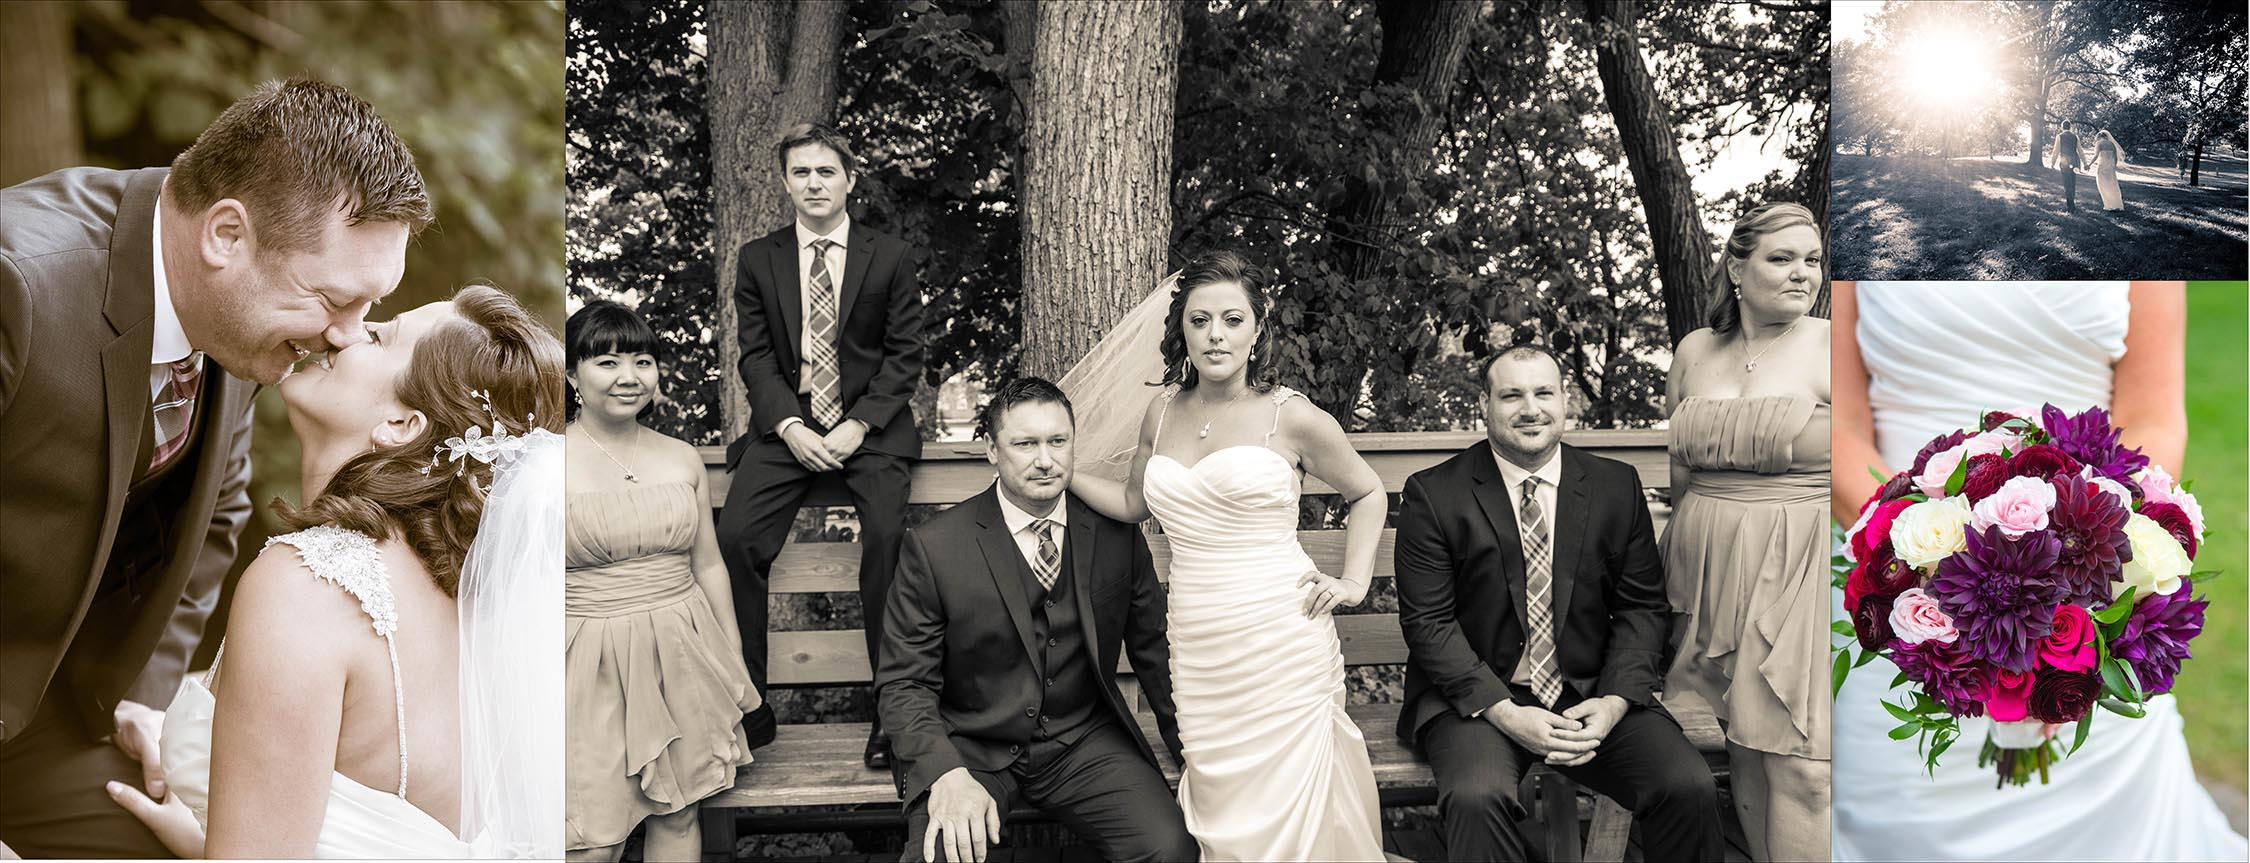 Best Wedding Photographers Stillwater MN